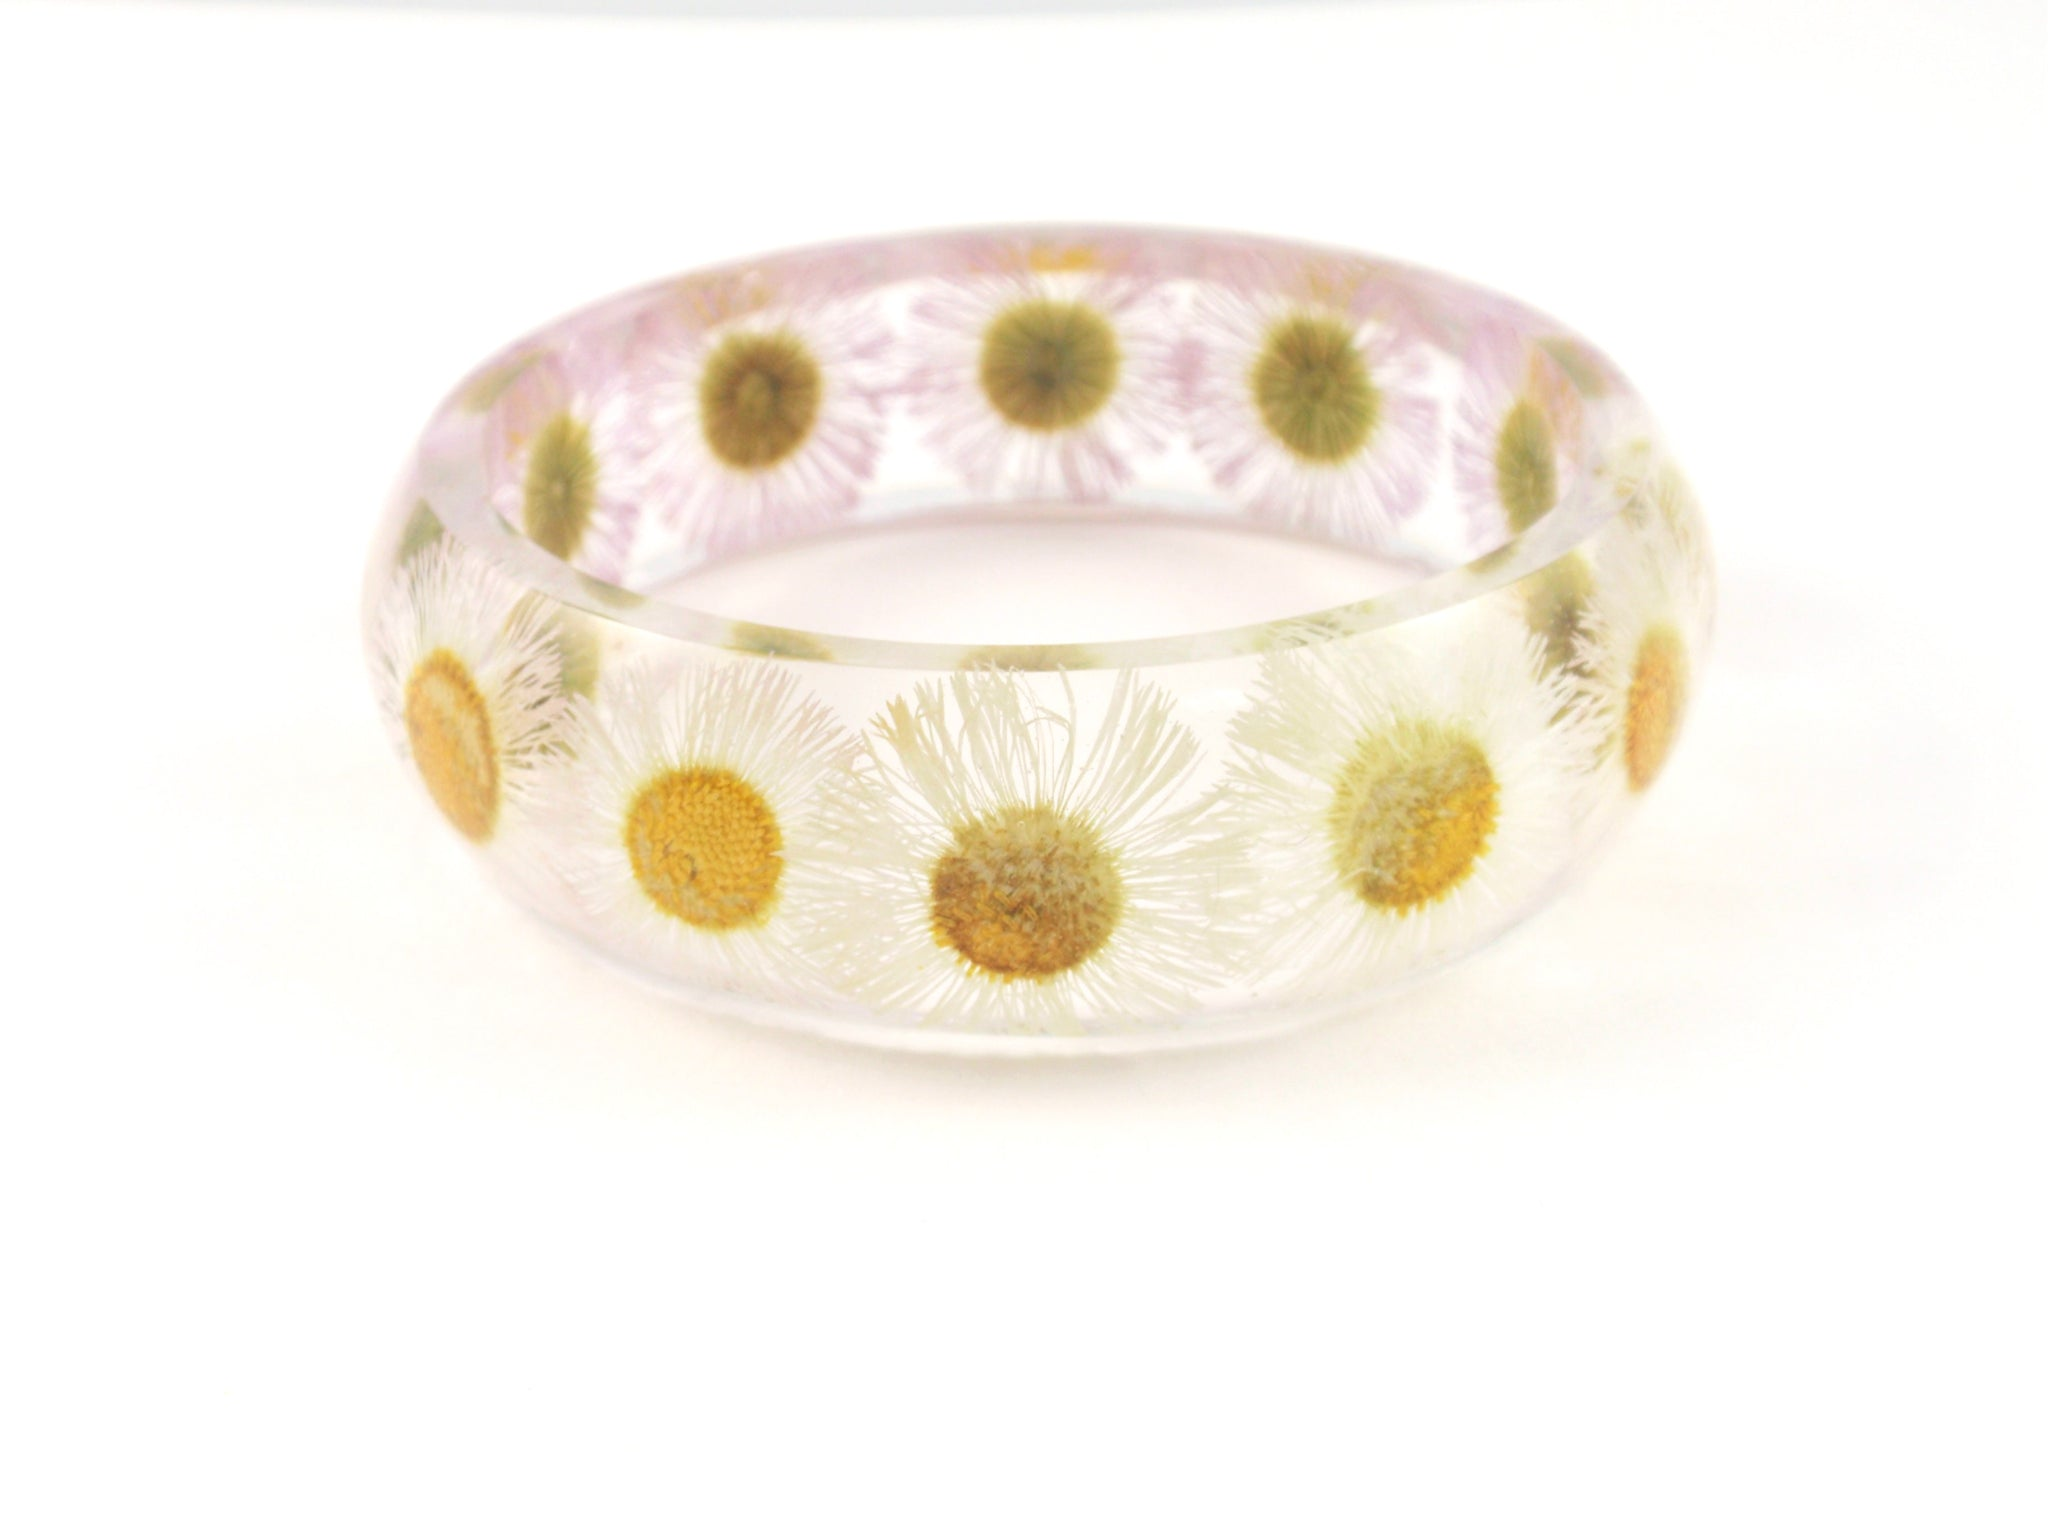 Real Daisy botanical bangle Bracelet